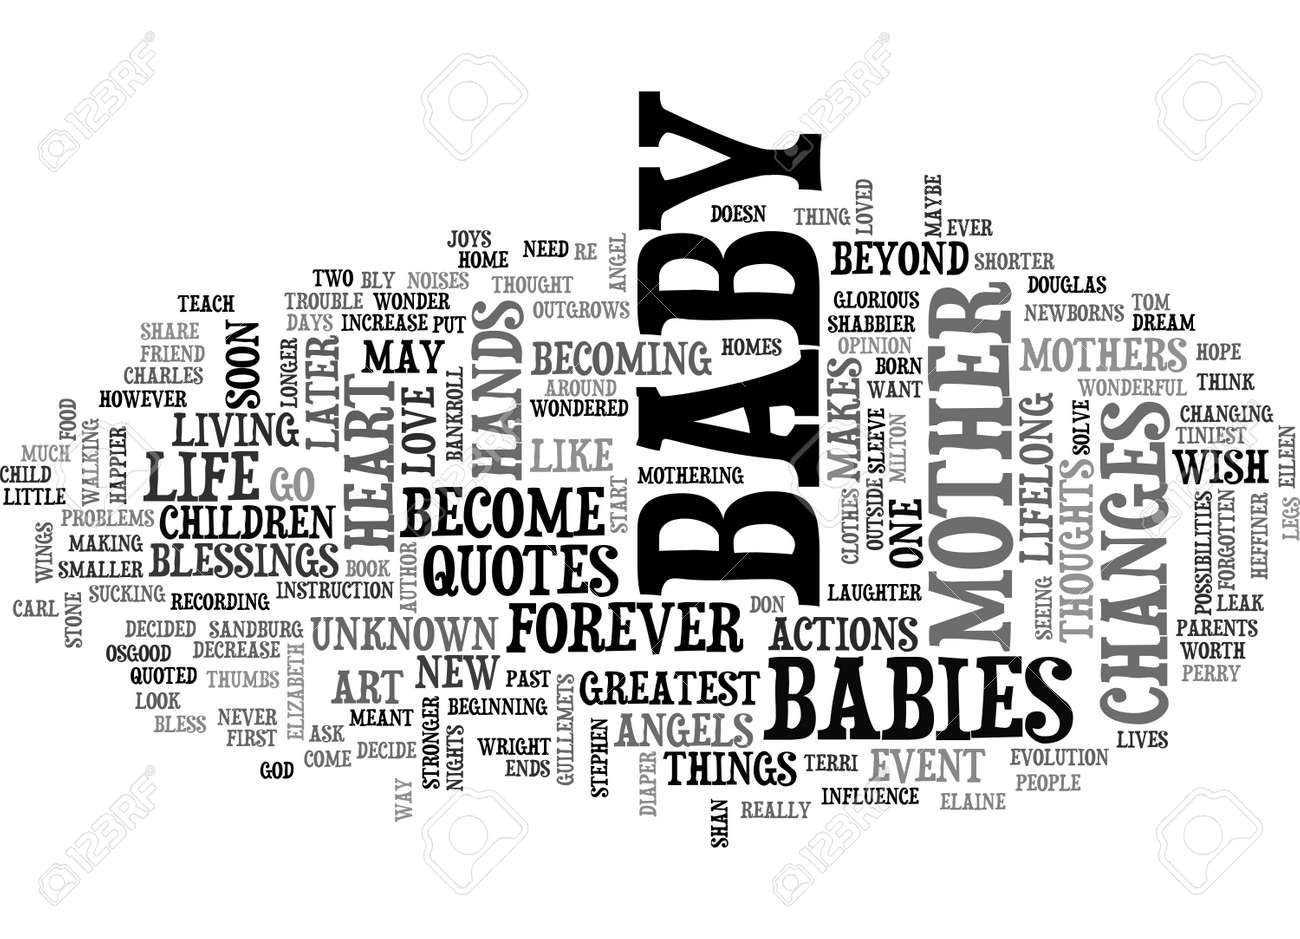 Baby Quotes Text Word Cloud Concept Royalty Free Cliparts Vectors